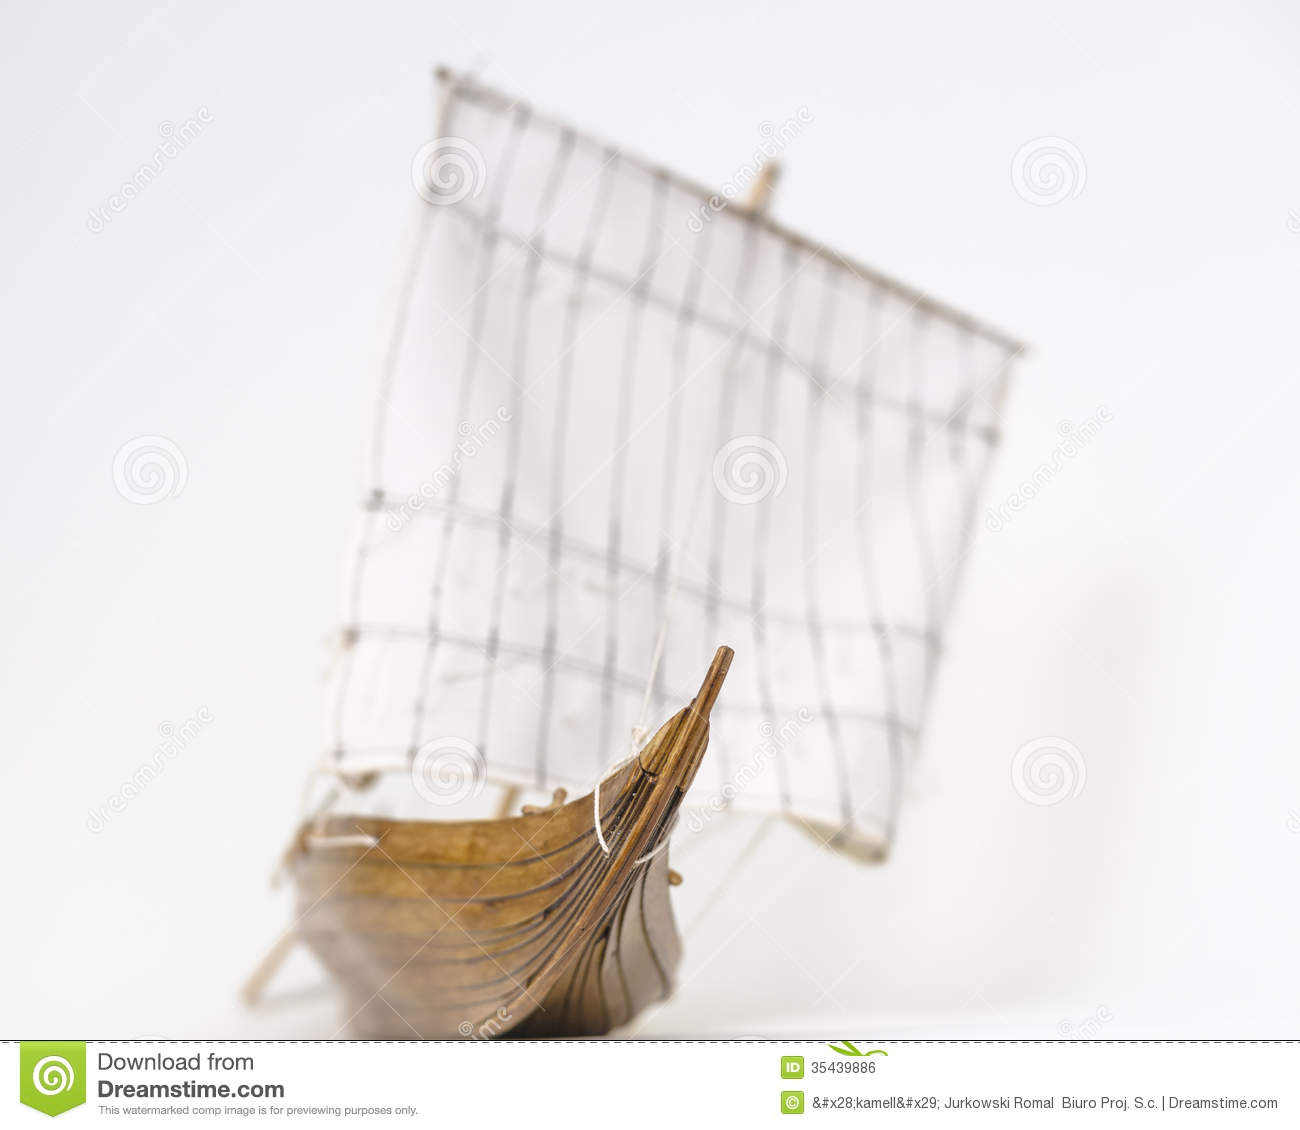 Wooden model Viking ship . Background blur. A small depth of field.